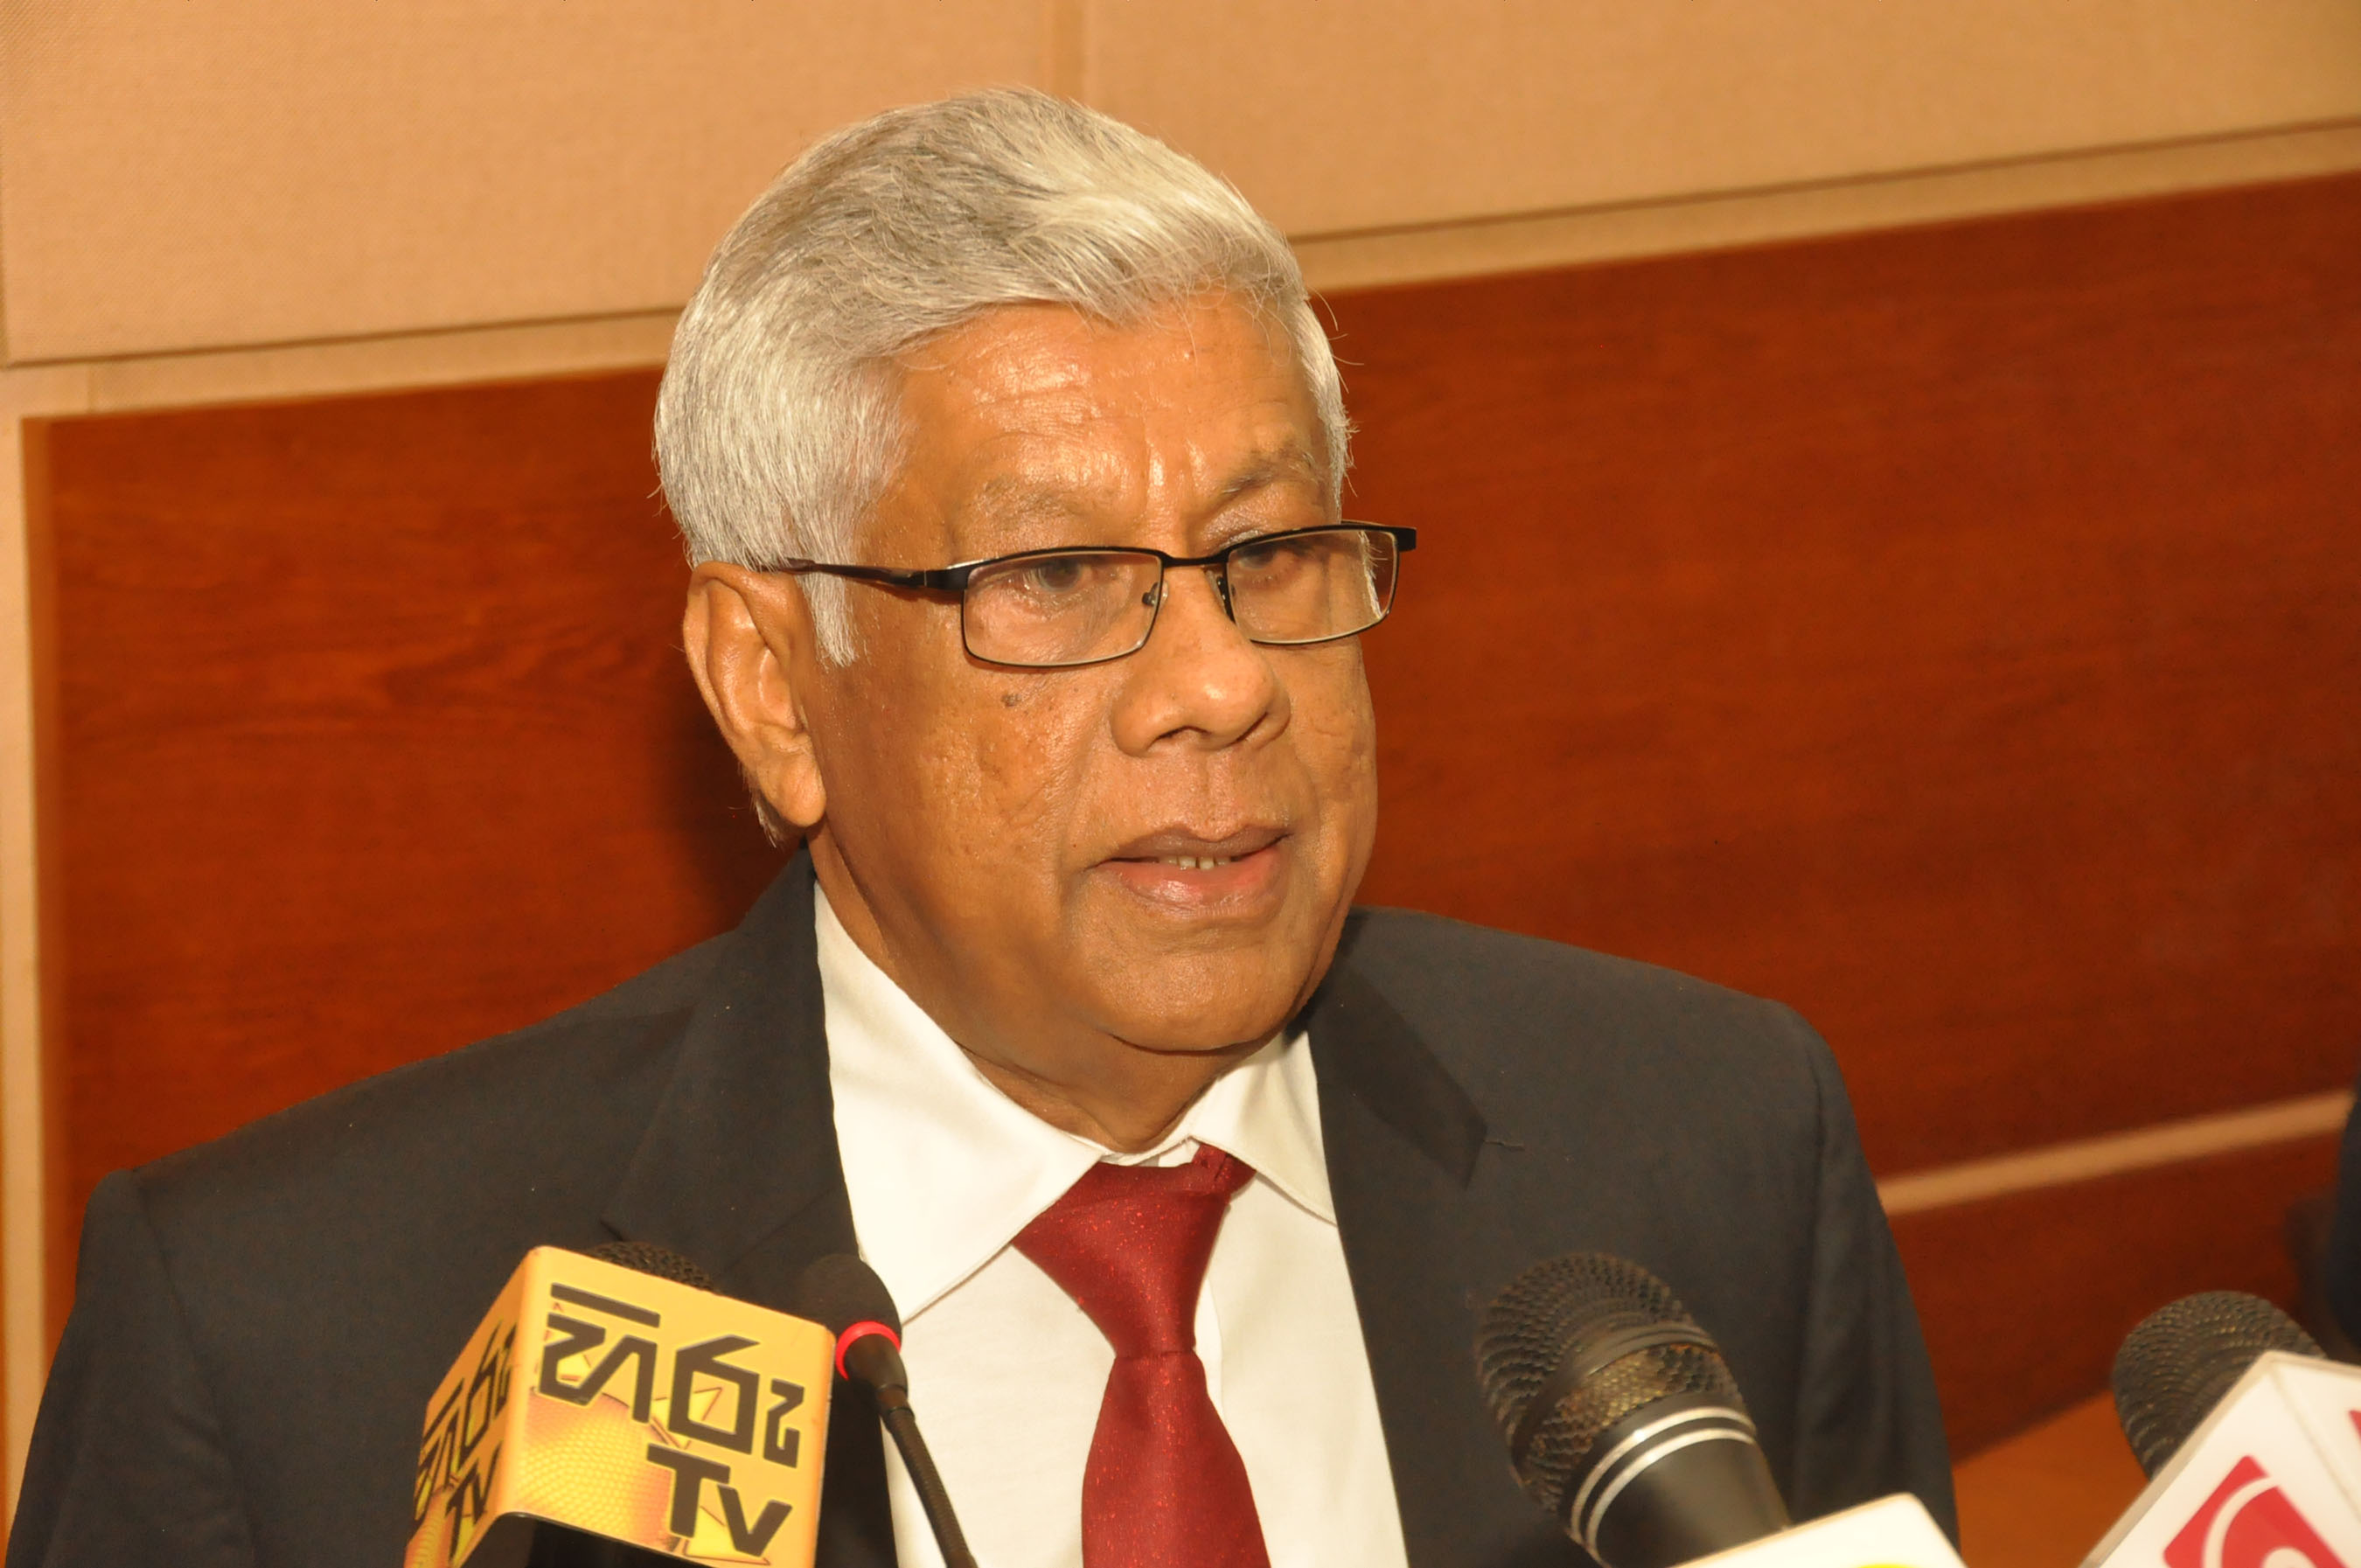 gerry jayawardena